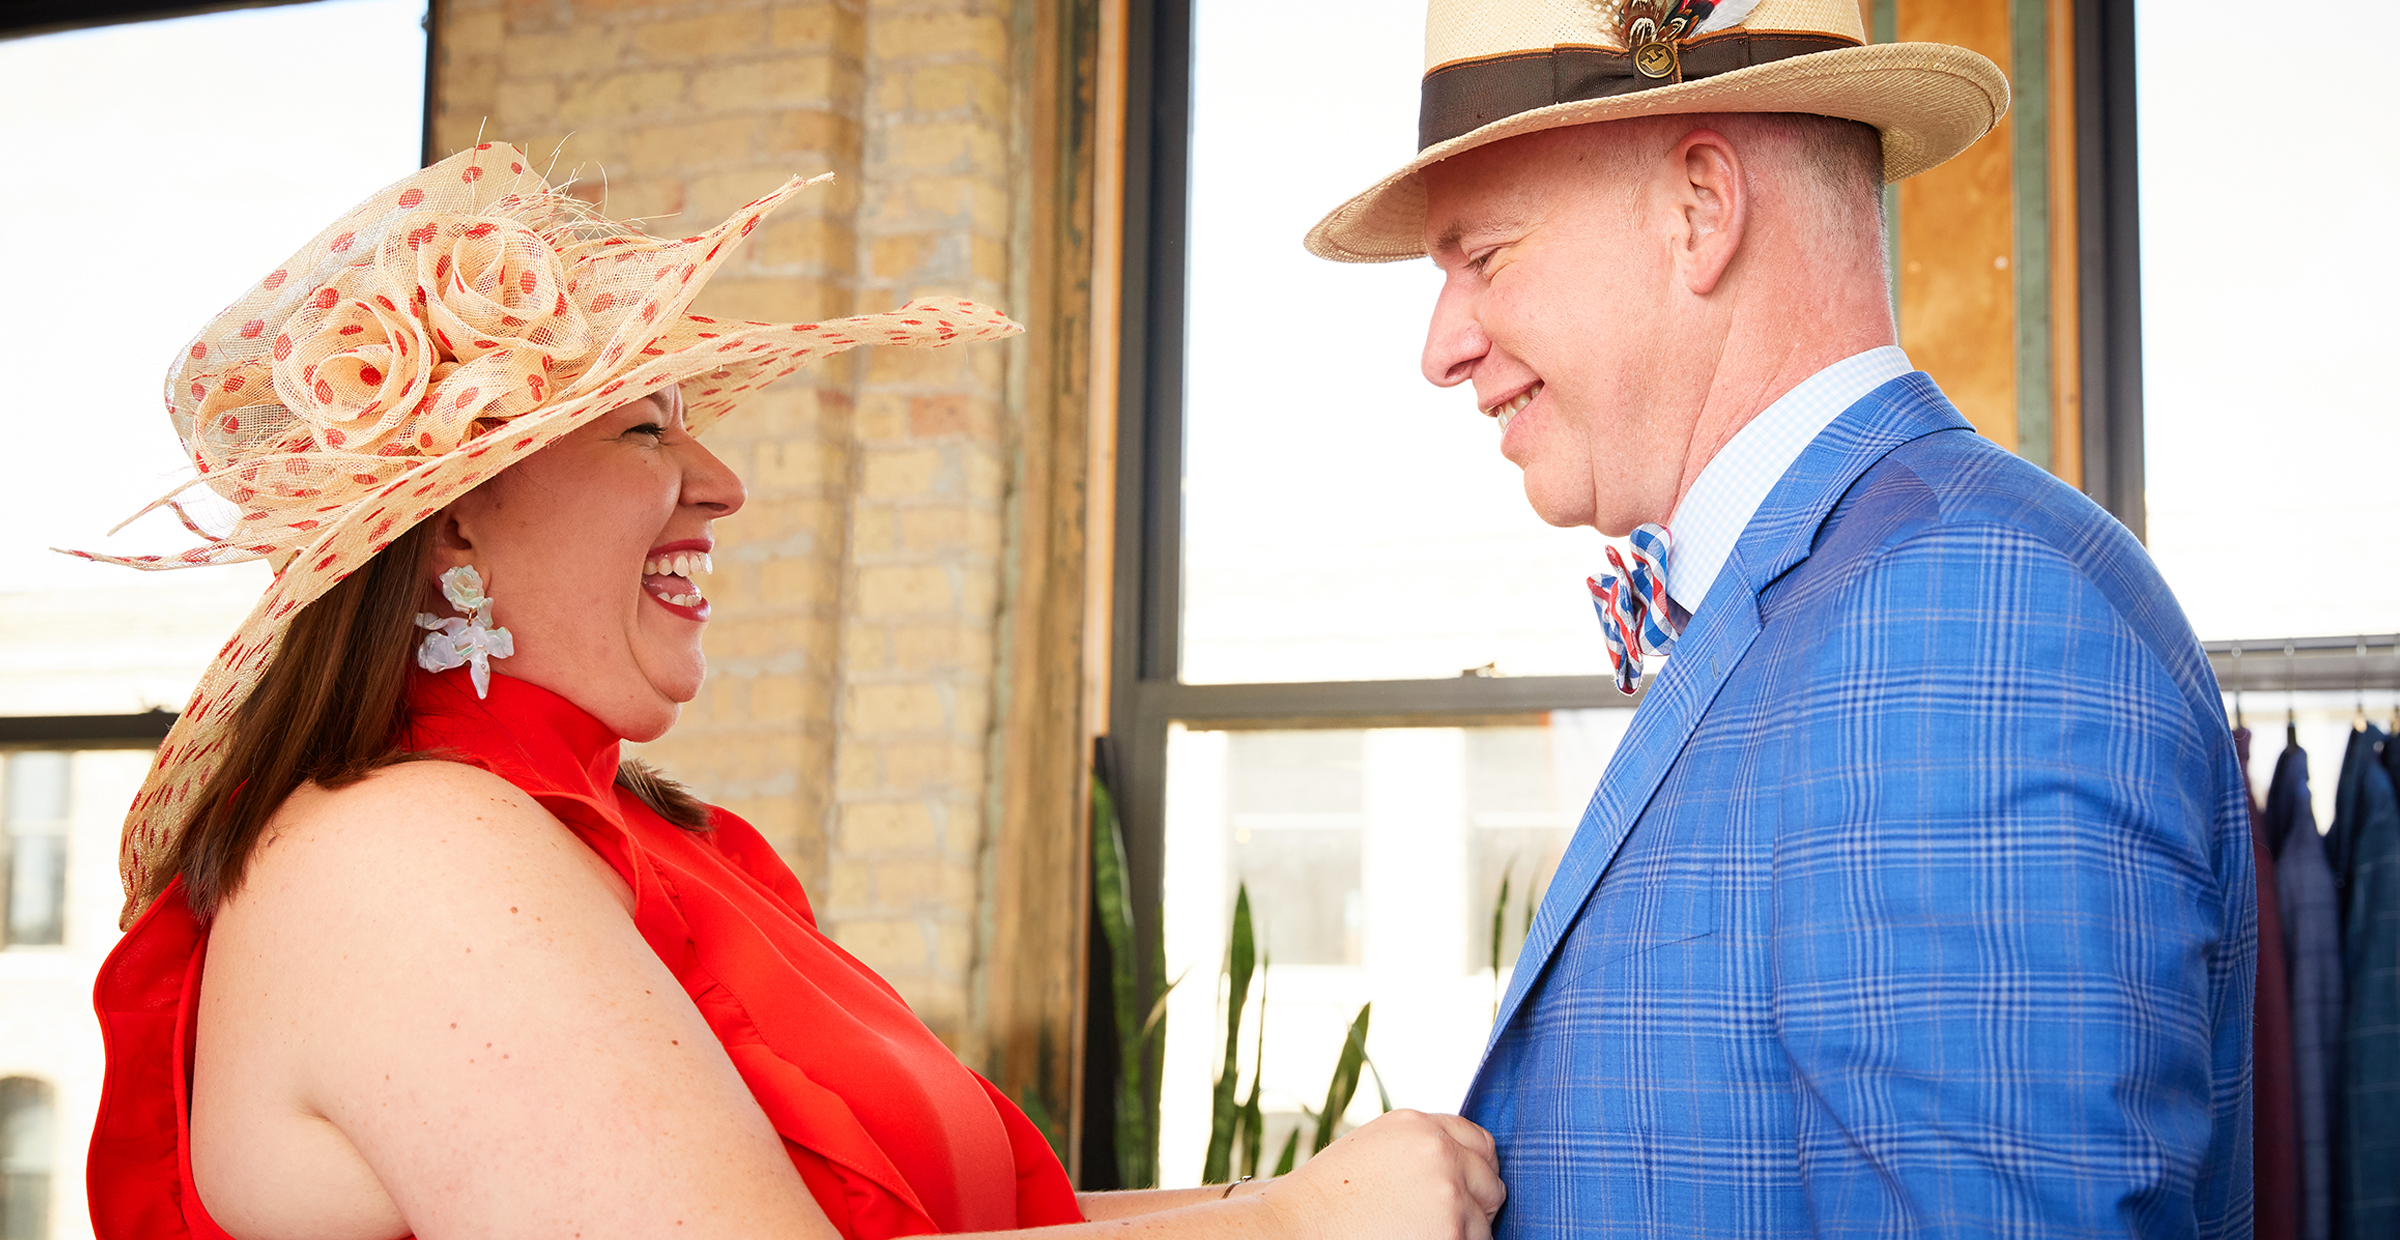 From Kentucky to Chicago, Two Customers Get Styled for the Derby